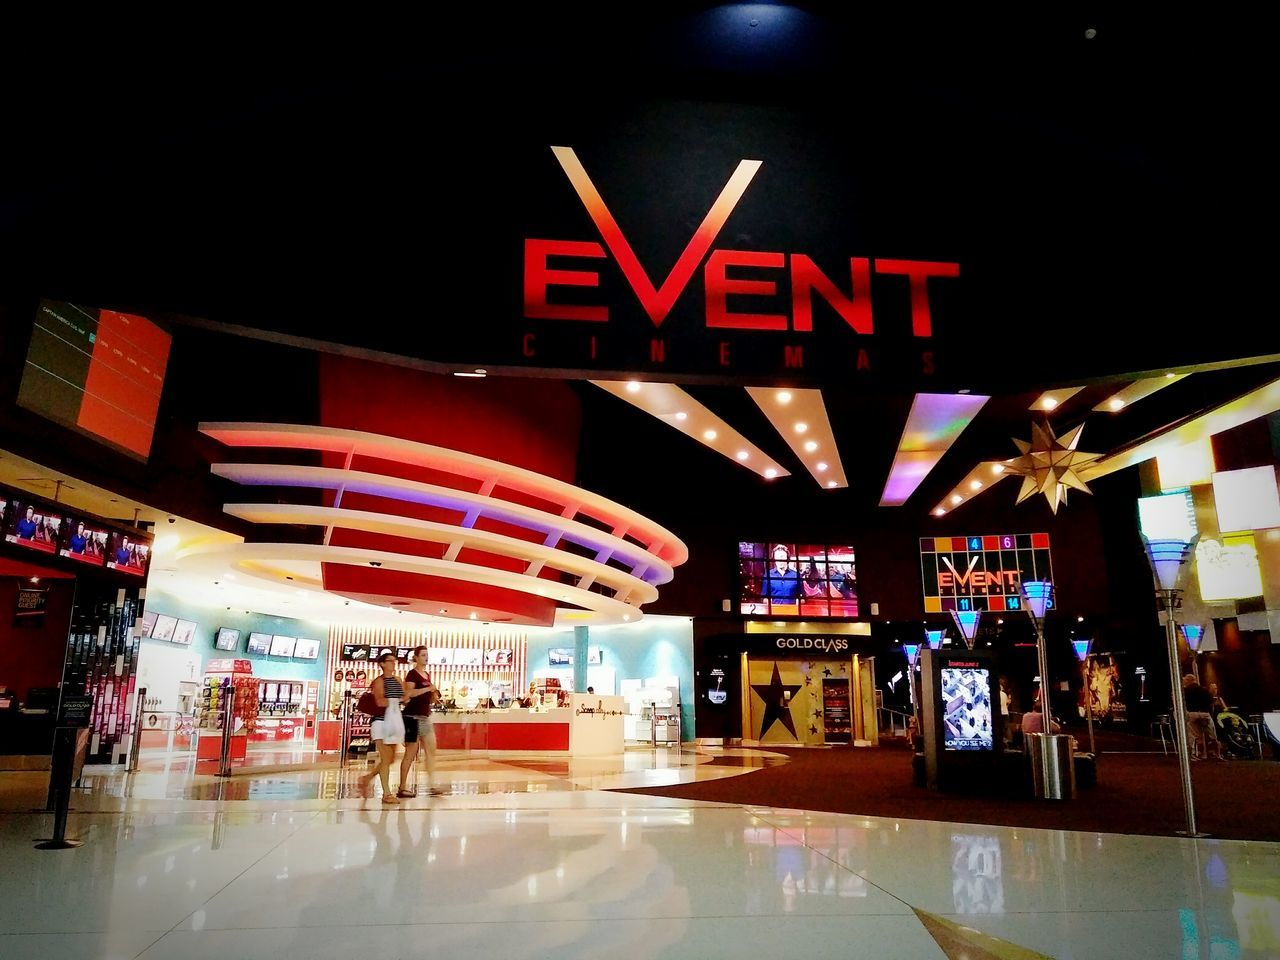 Cinema In Your Life - This is so beautiful event cinemas of this favourite place at Chermside, Queensland. Everyone would love to come and watch cinemas everyday, or weekends. People Are People Cinematic Photography Cinematreasures Cinemas Lights And People Lights Colors Textures And Shapes Textures And Patterns Technology Textures And Shadows Beautiful Photography💕 Movie Theater Movie Time The Following